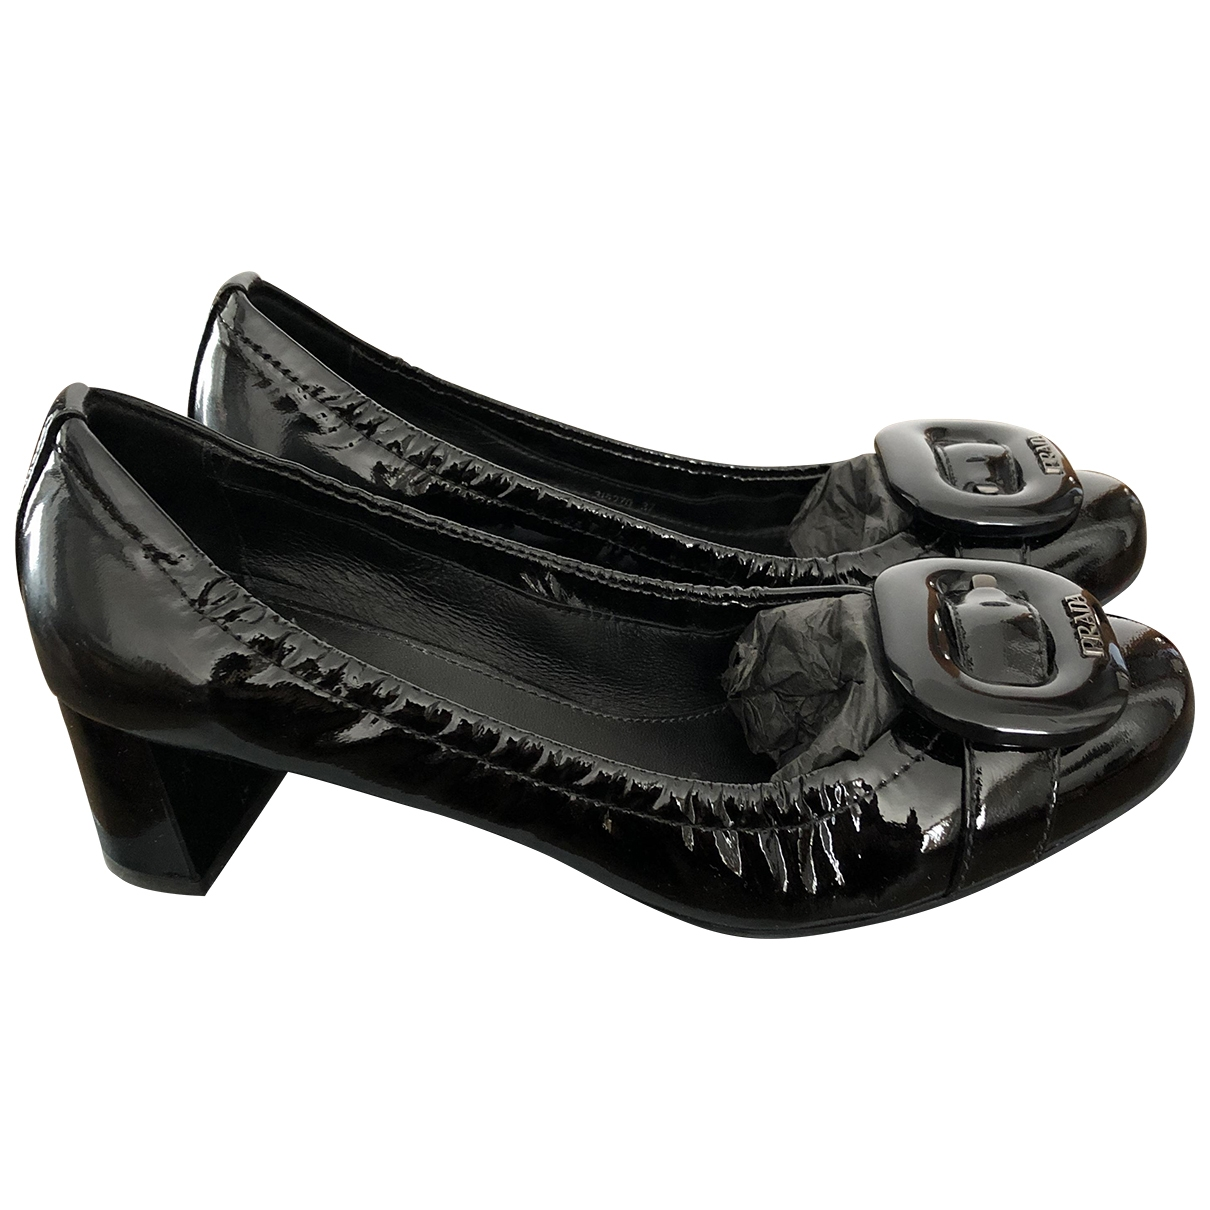 Prada \N Ballerinas in  Schwarz Lackleder